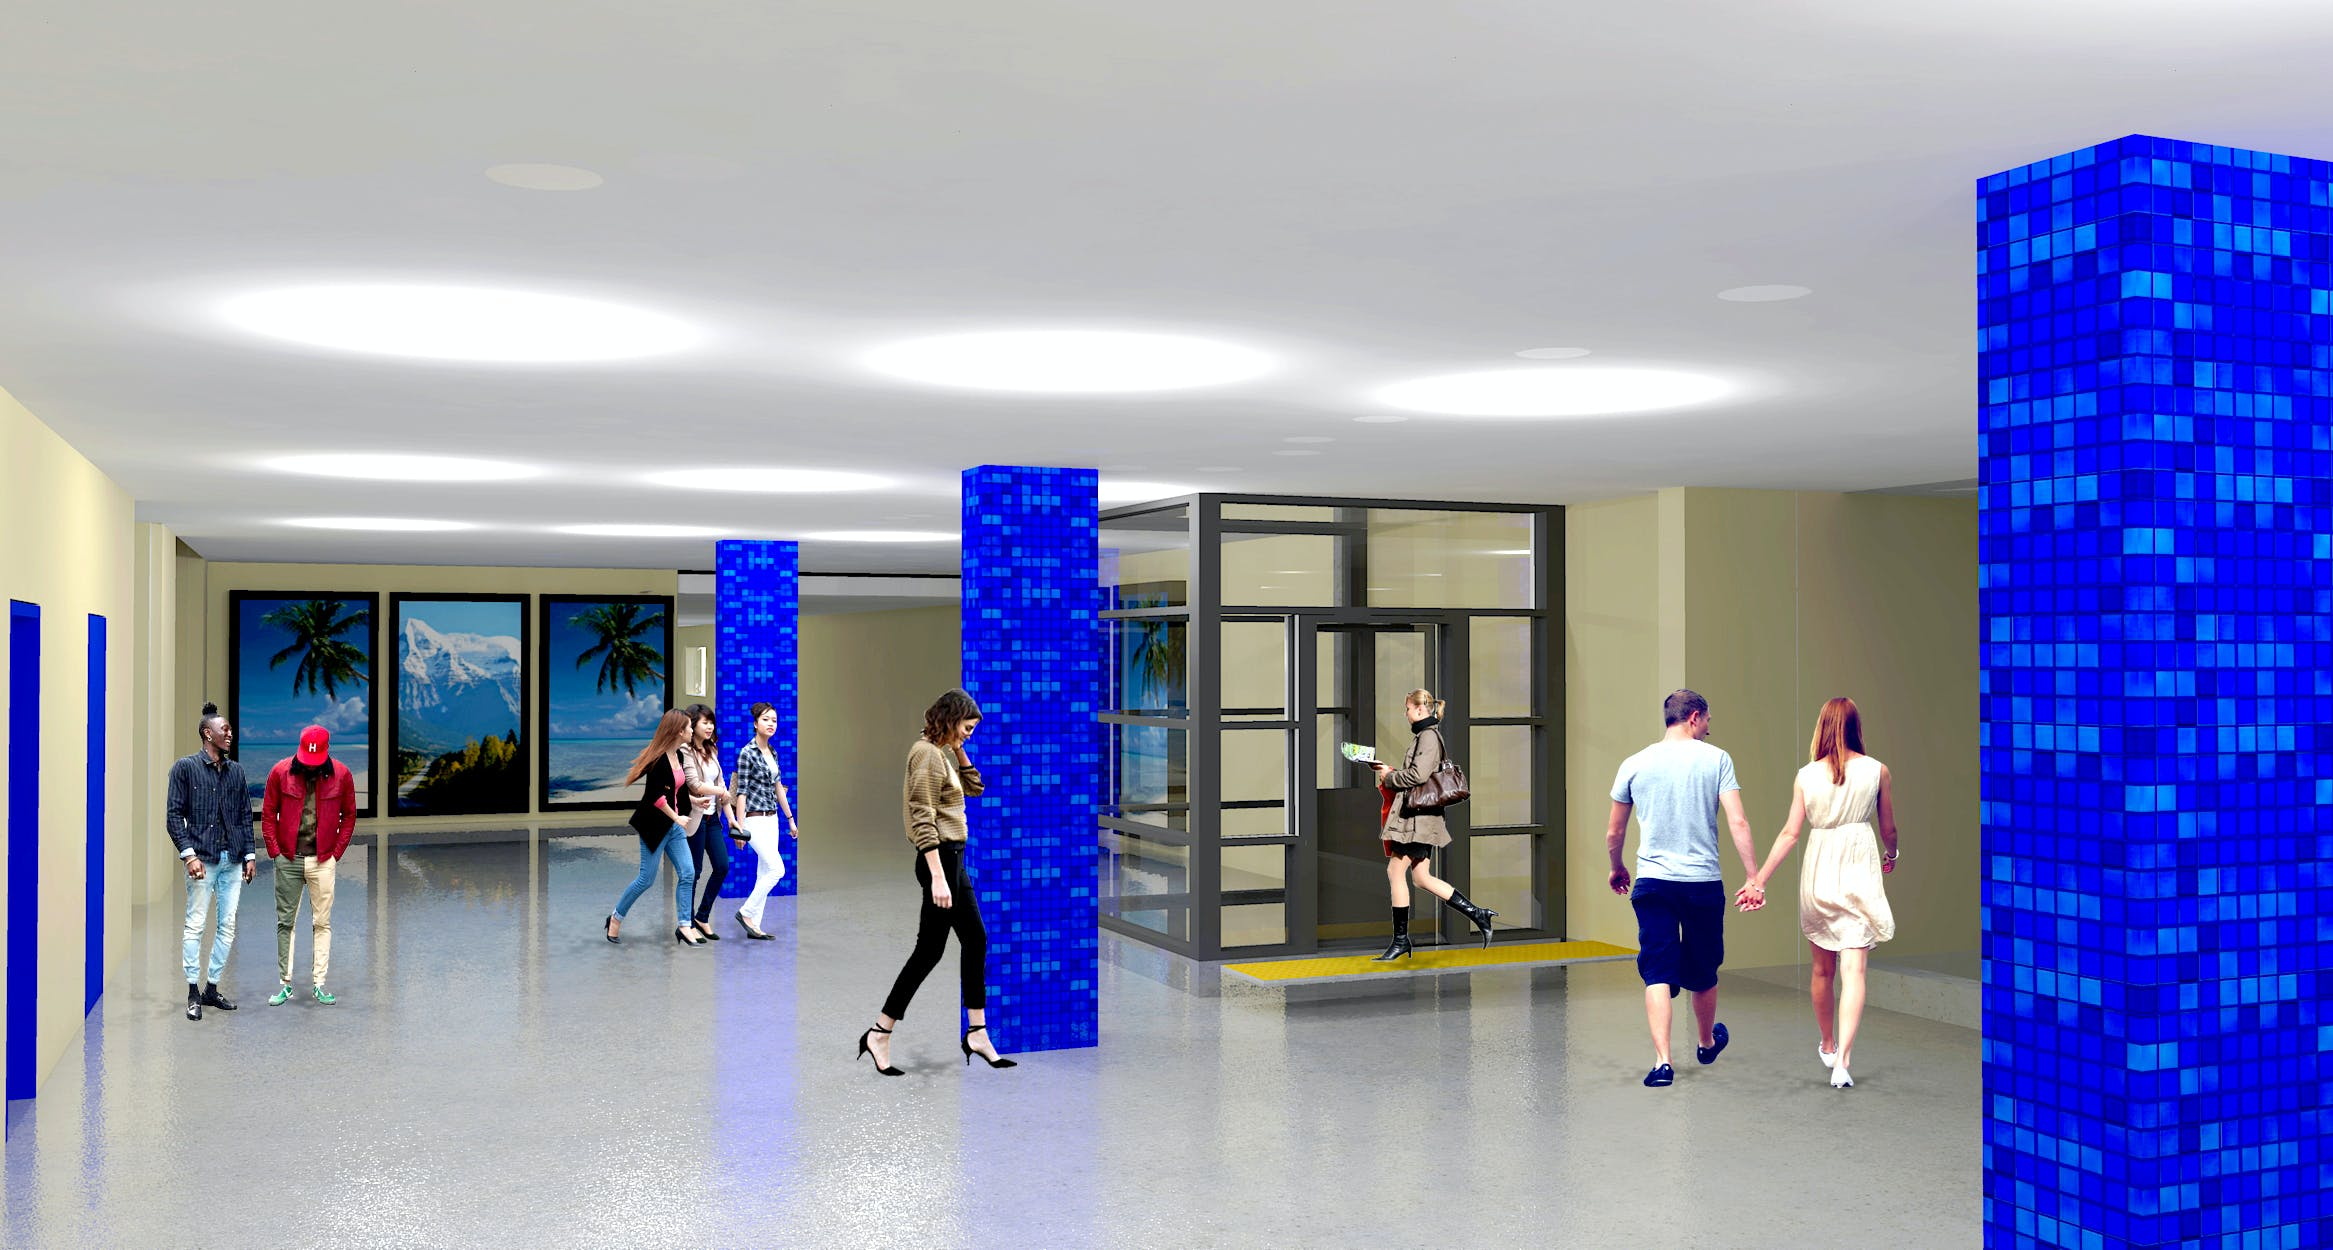 Artist's impression of concourse at Edgecliff Station